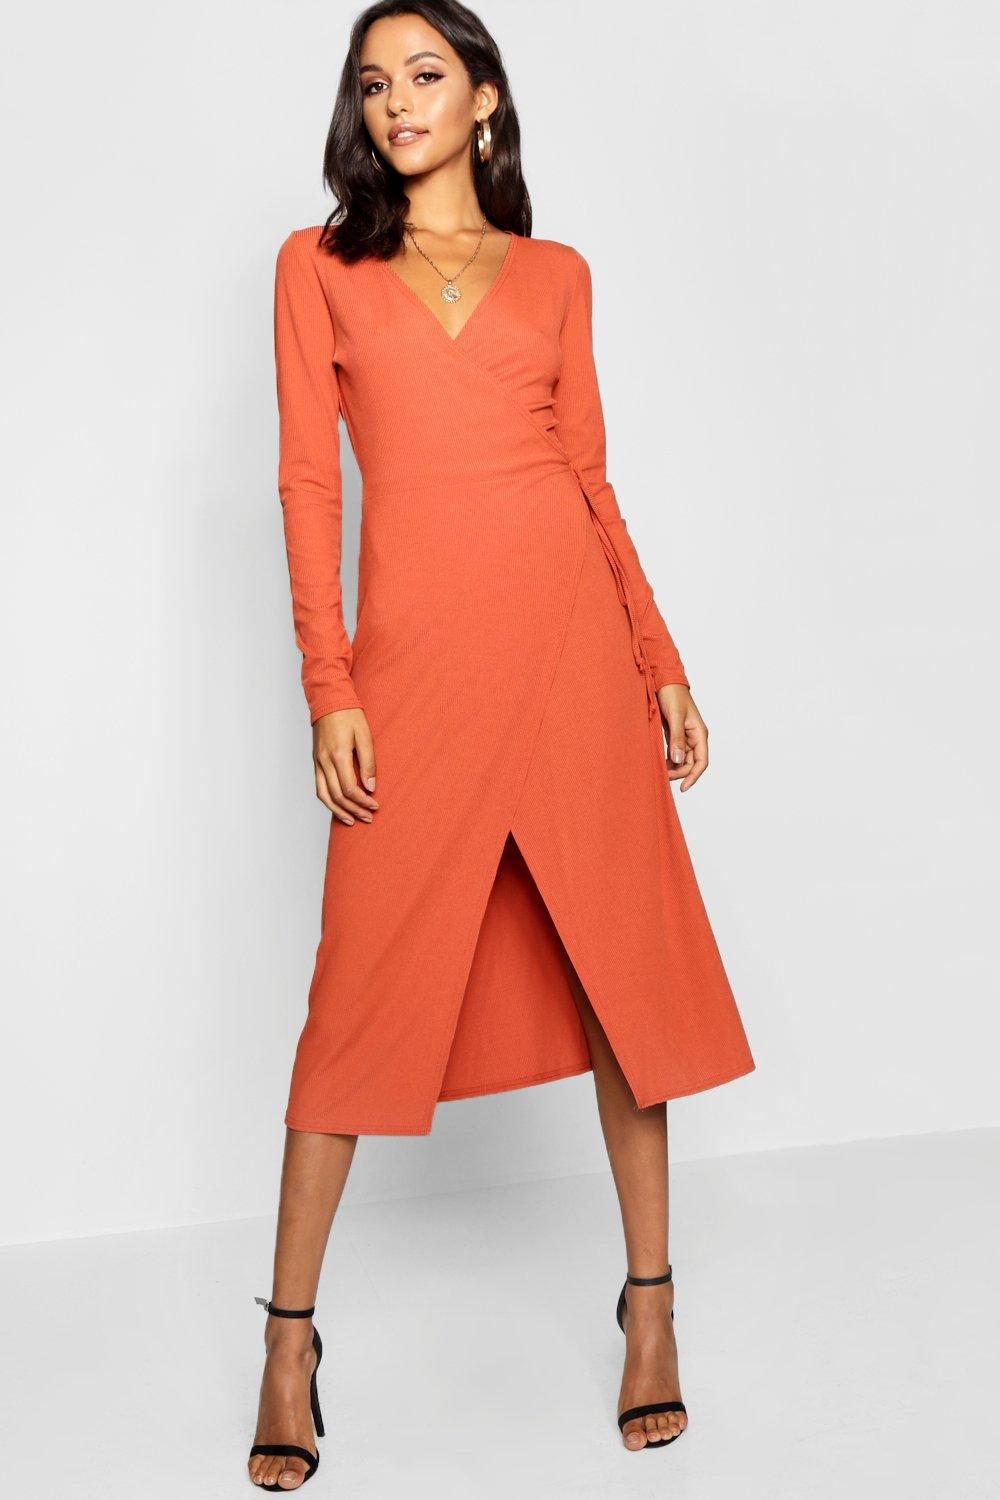 80024c50fd8b Lyst - Boohoo Tall Rib Wrap Jersey Dress in Orange